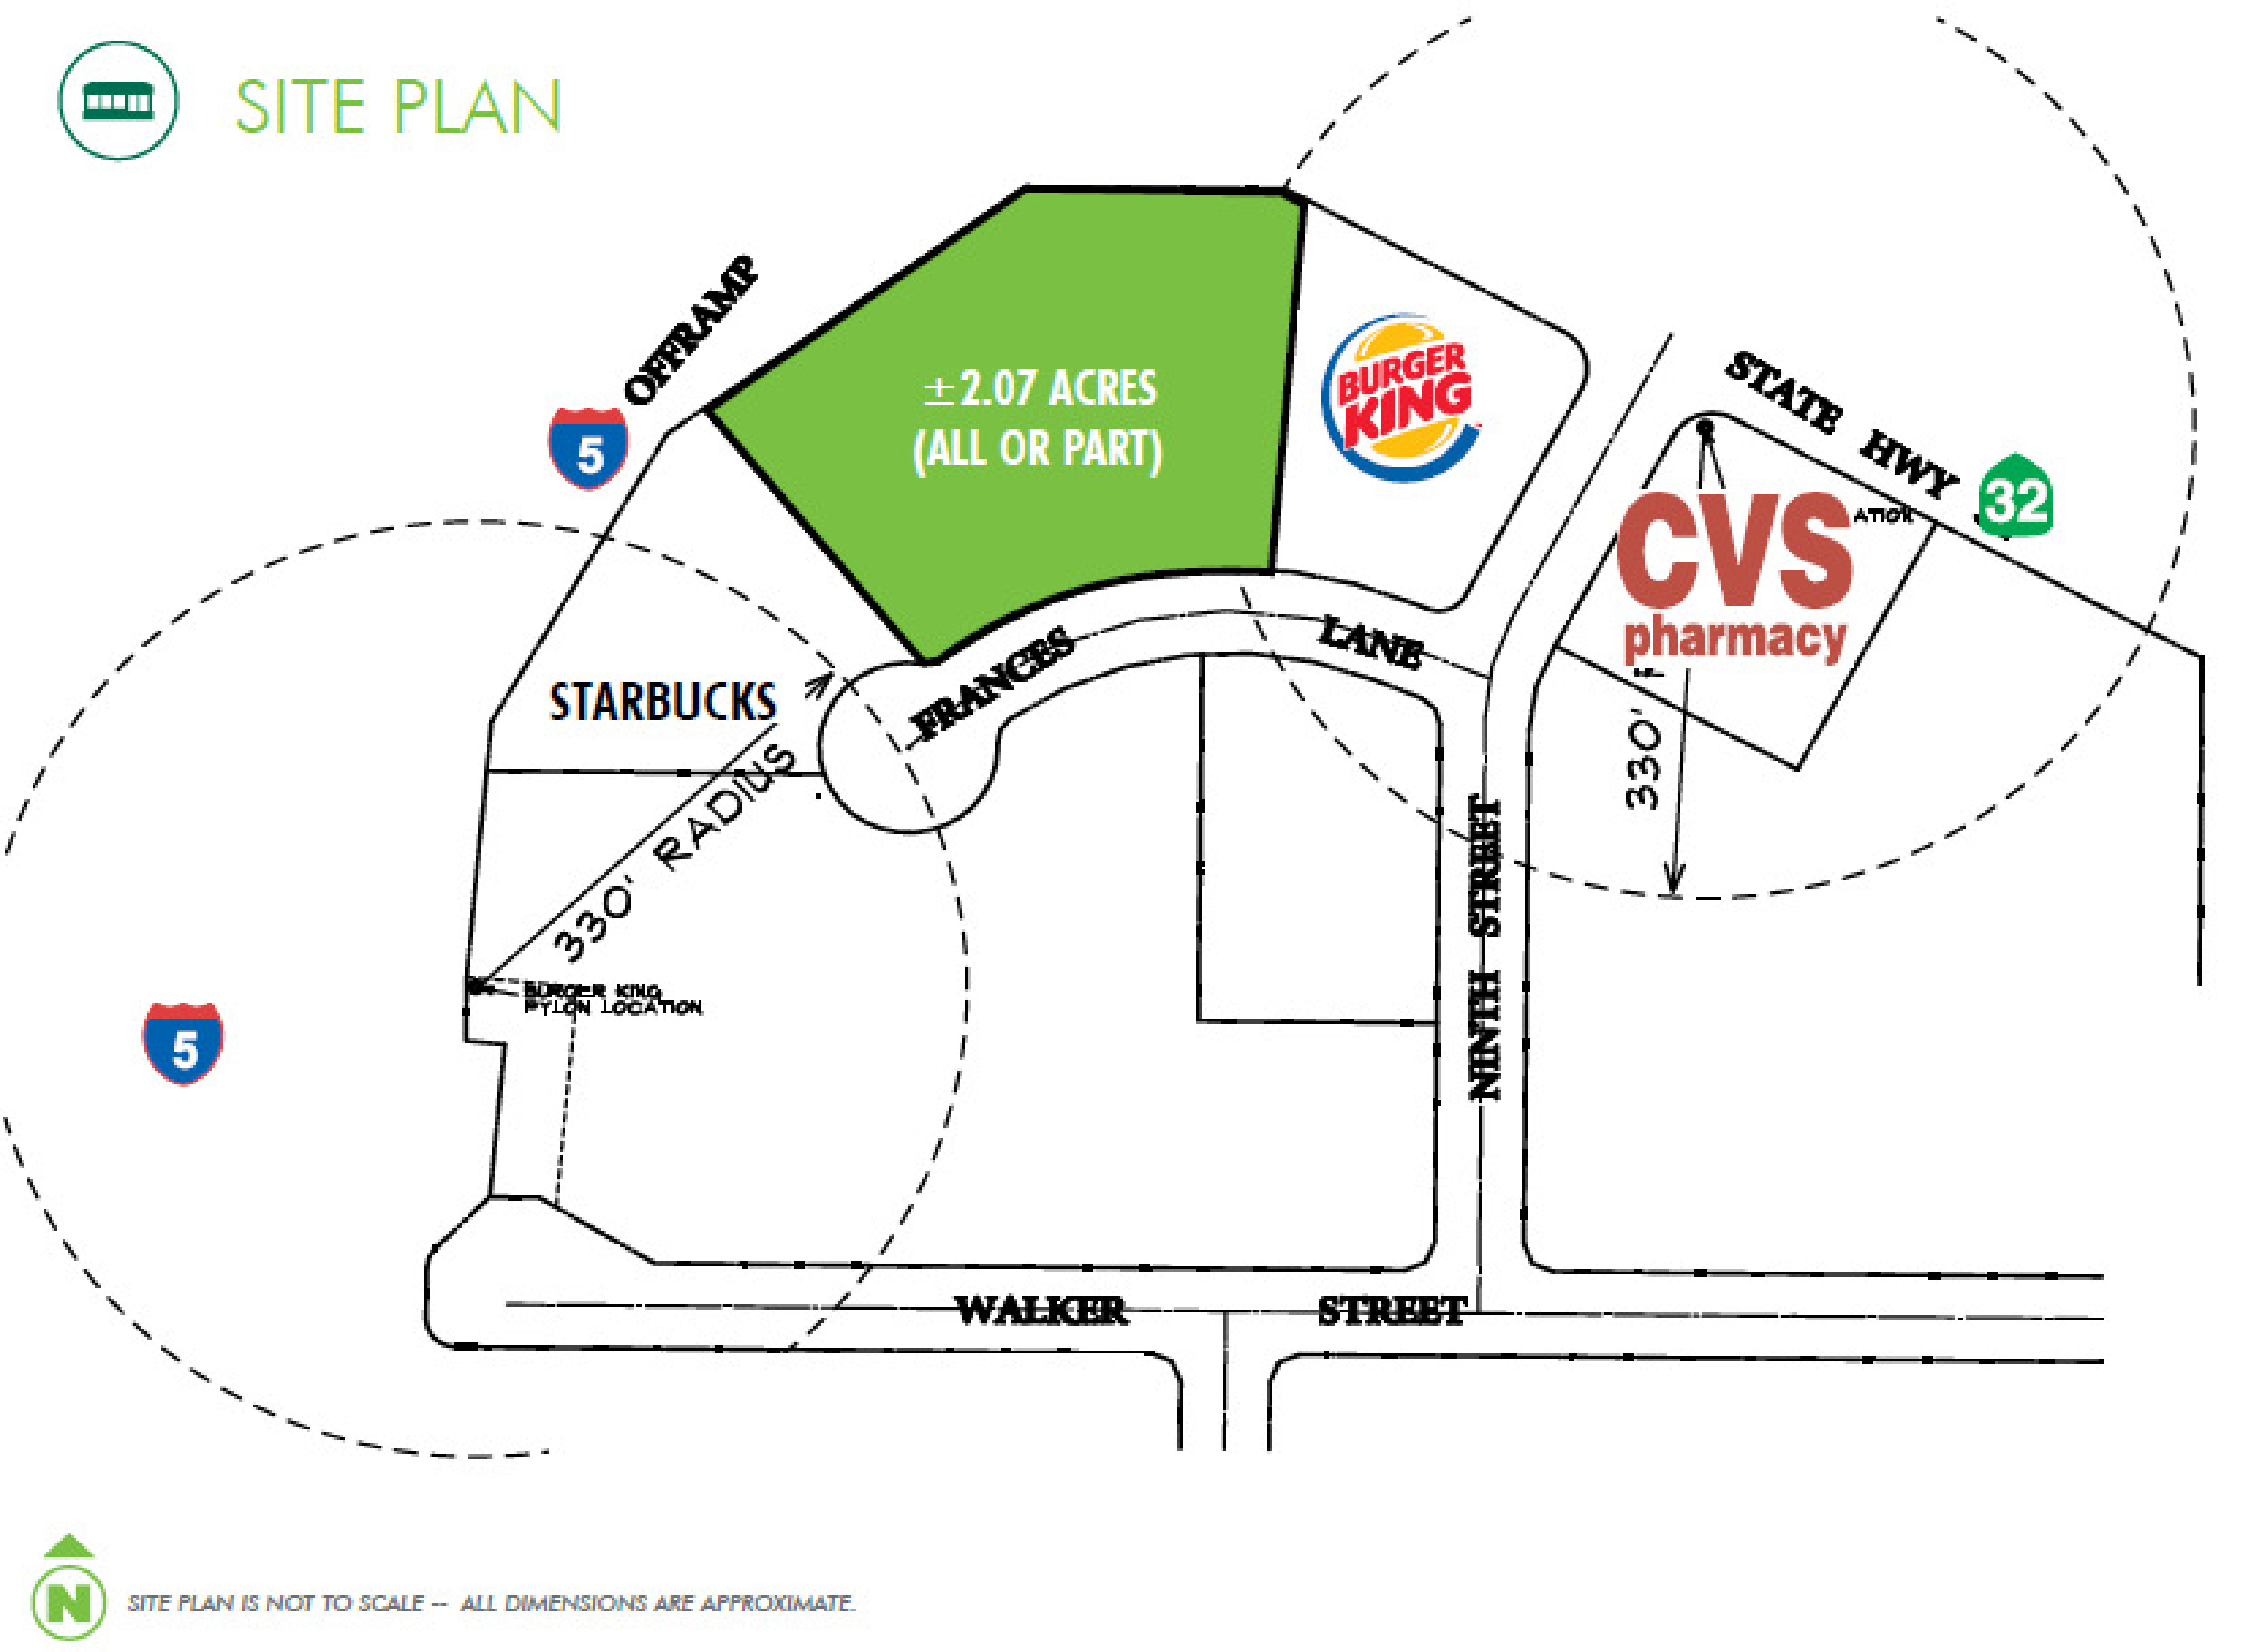 Highway Commercial Land - I5 & Hwy 32: site plan